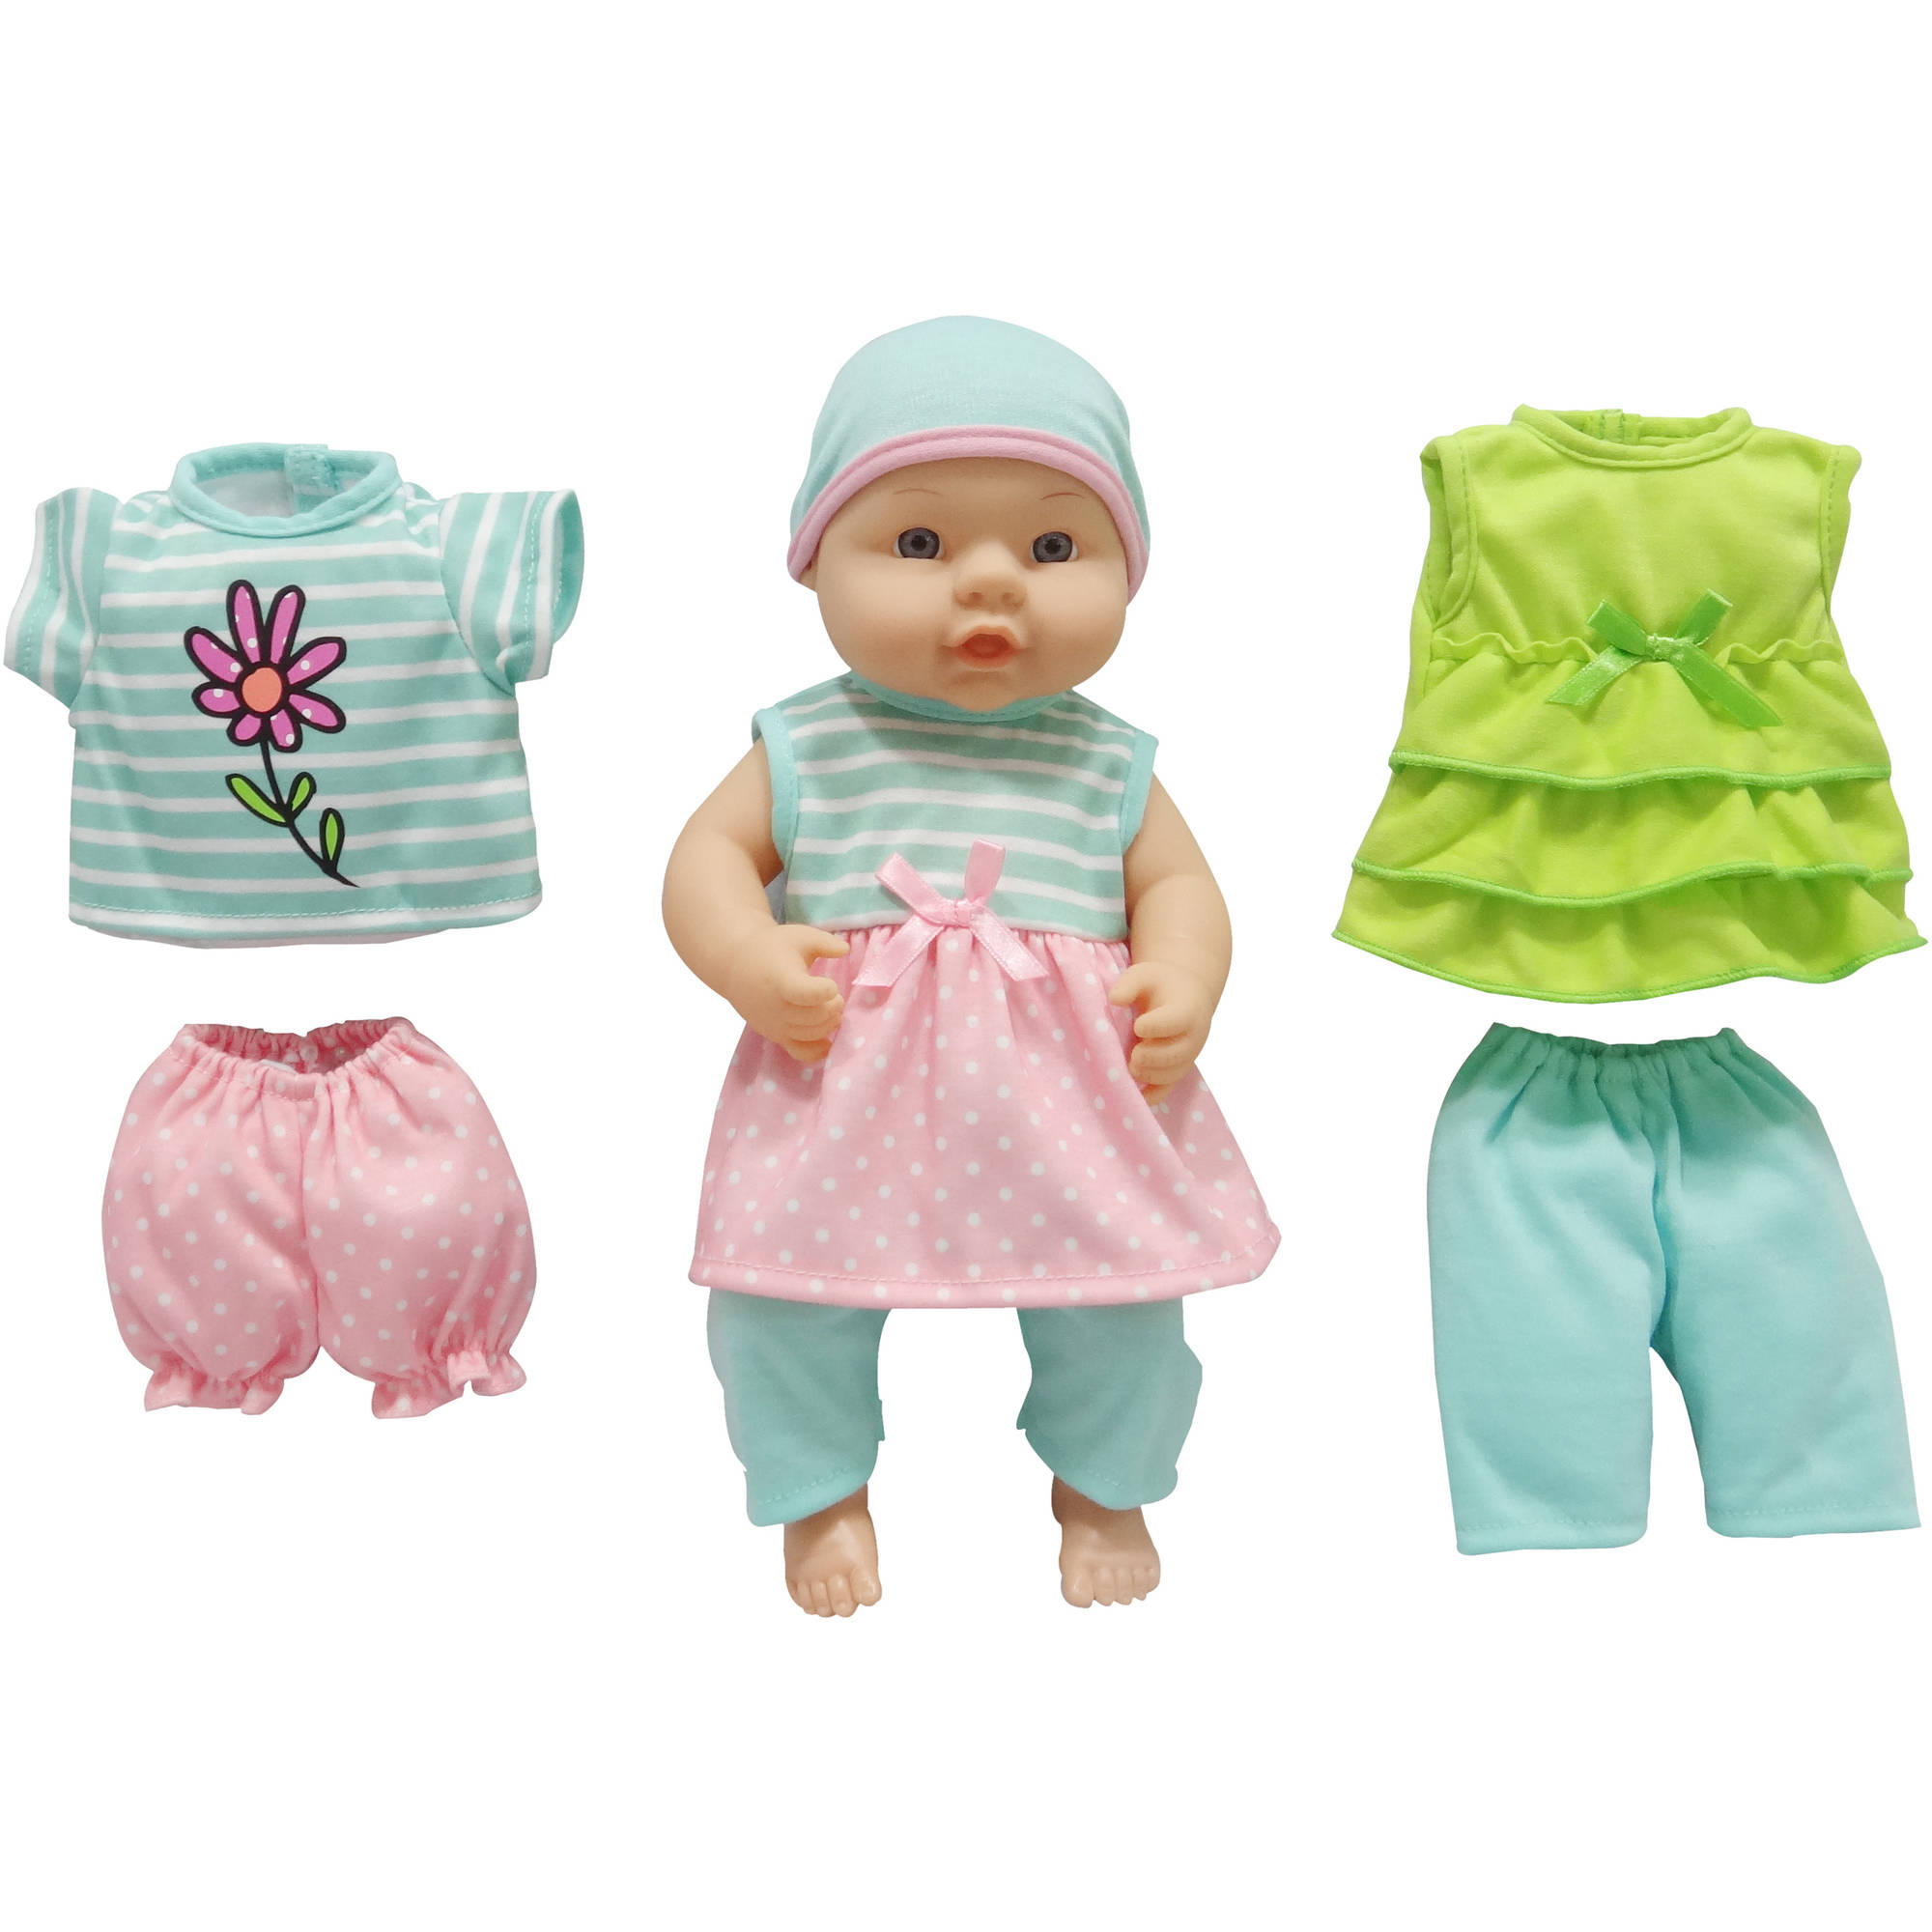 "My Sweet Love 12.5"" Baby with Outfits, Teal"